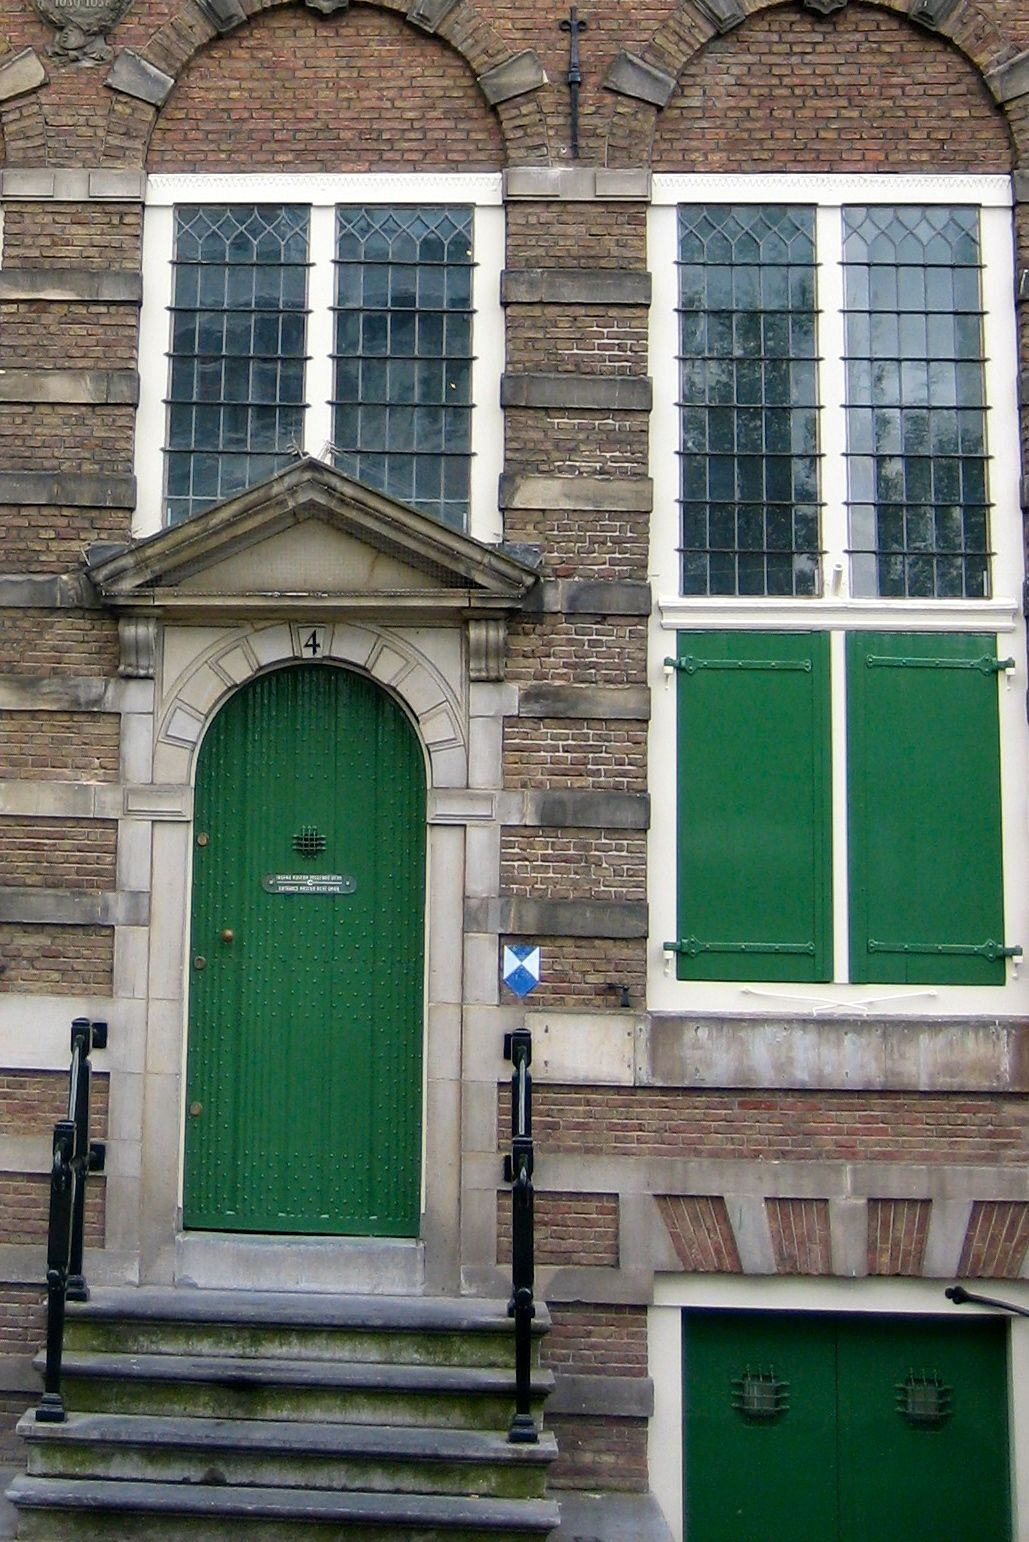 Amsterdam holland · Rembrandt\u0027s door ... & Rembrandt\u0027s door Amsterdam | Doors \u0026 windows | Pinterest ... Pezcame.Com